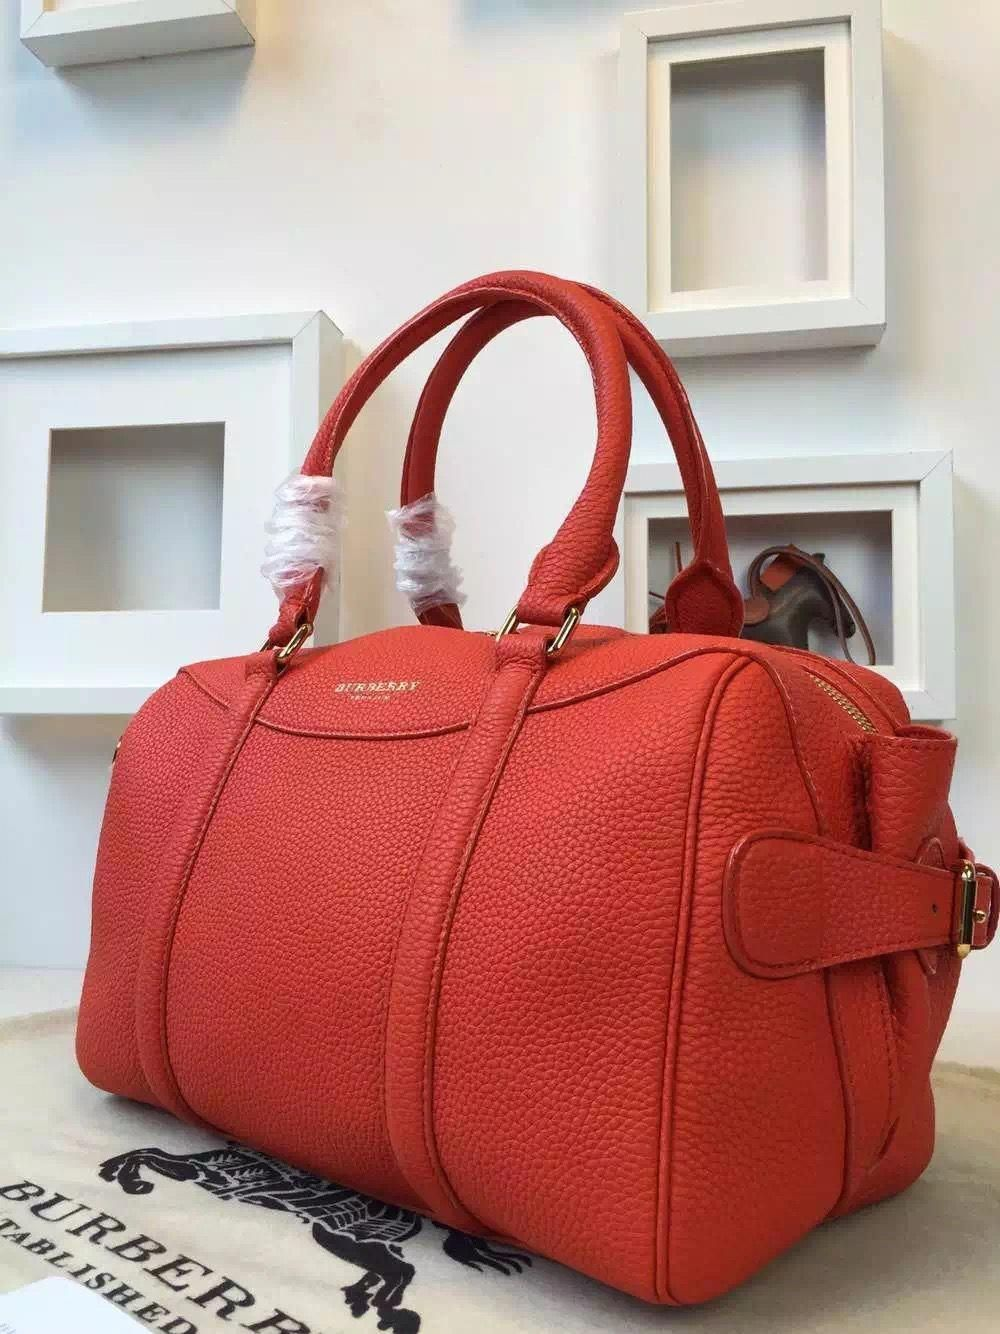 Burberry 39723611 The Bee In Grainy Bright Poppy Orange Leather 2015   Burberryhandbags ad1ef39c94b35